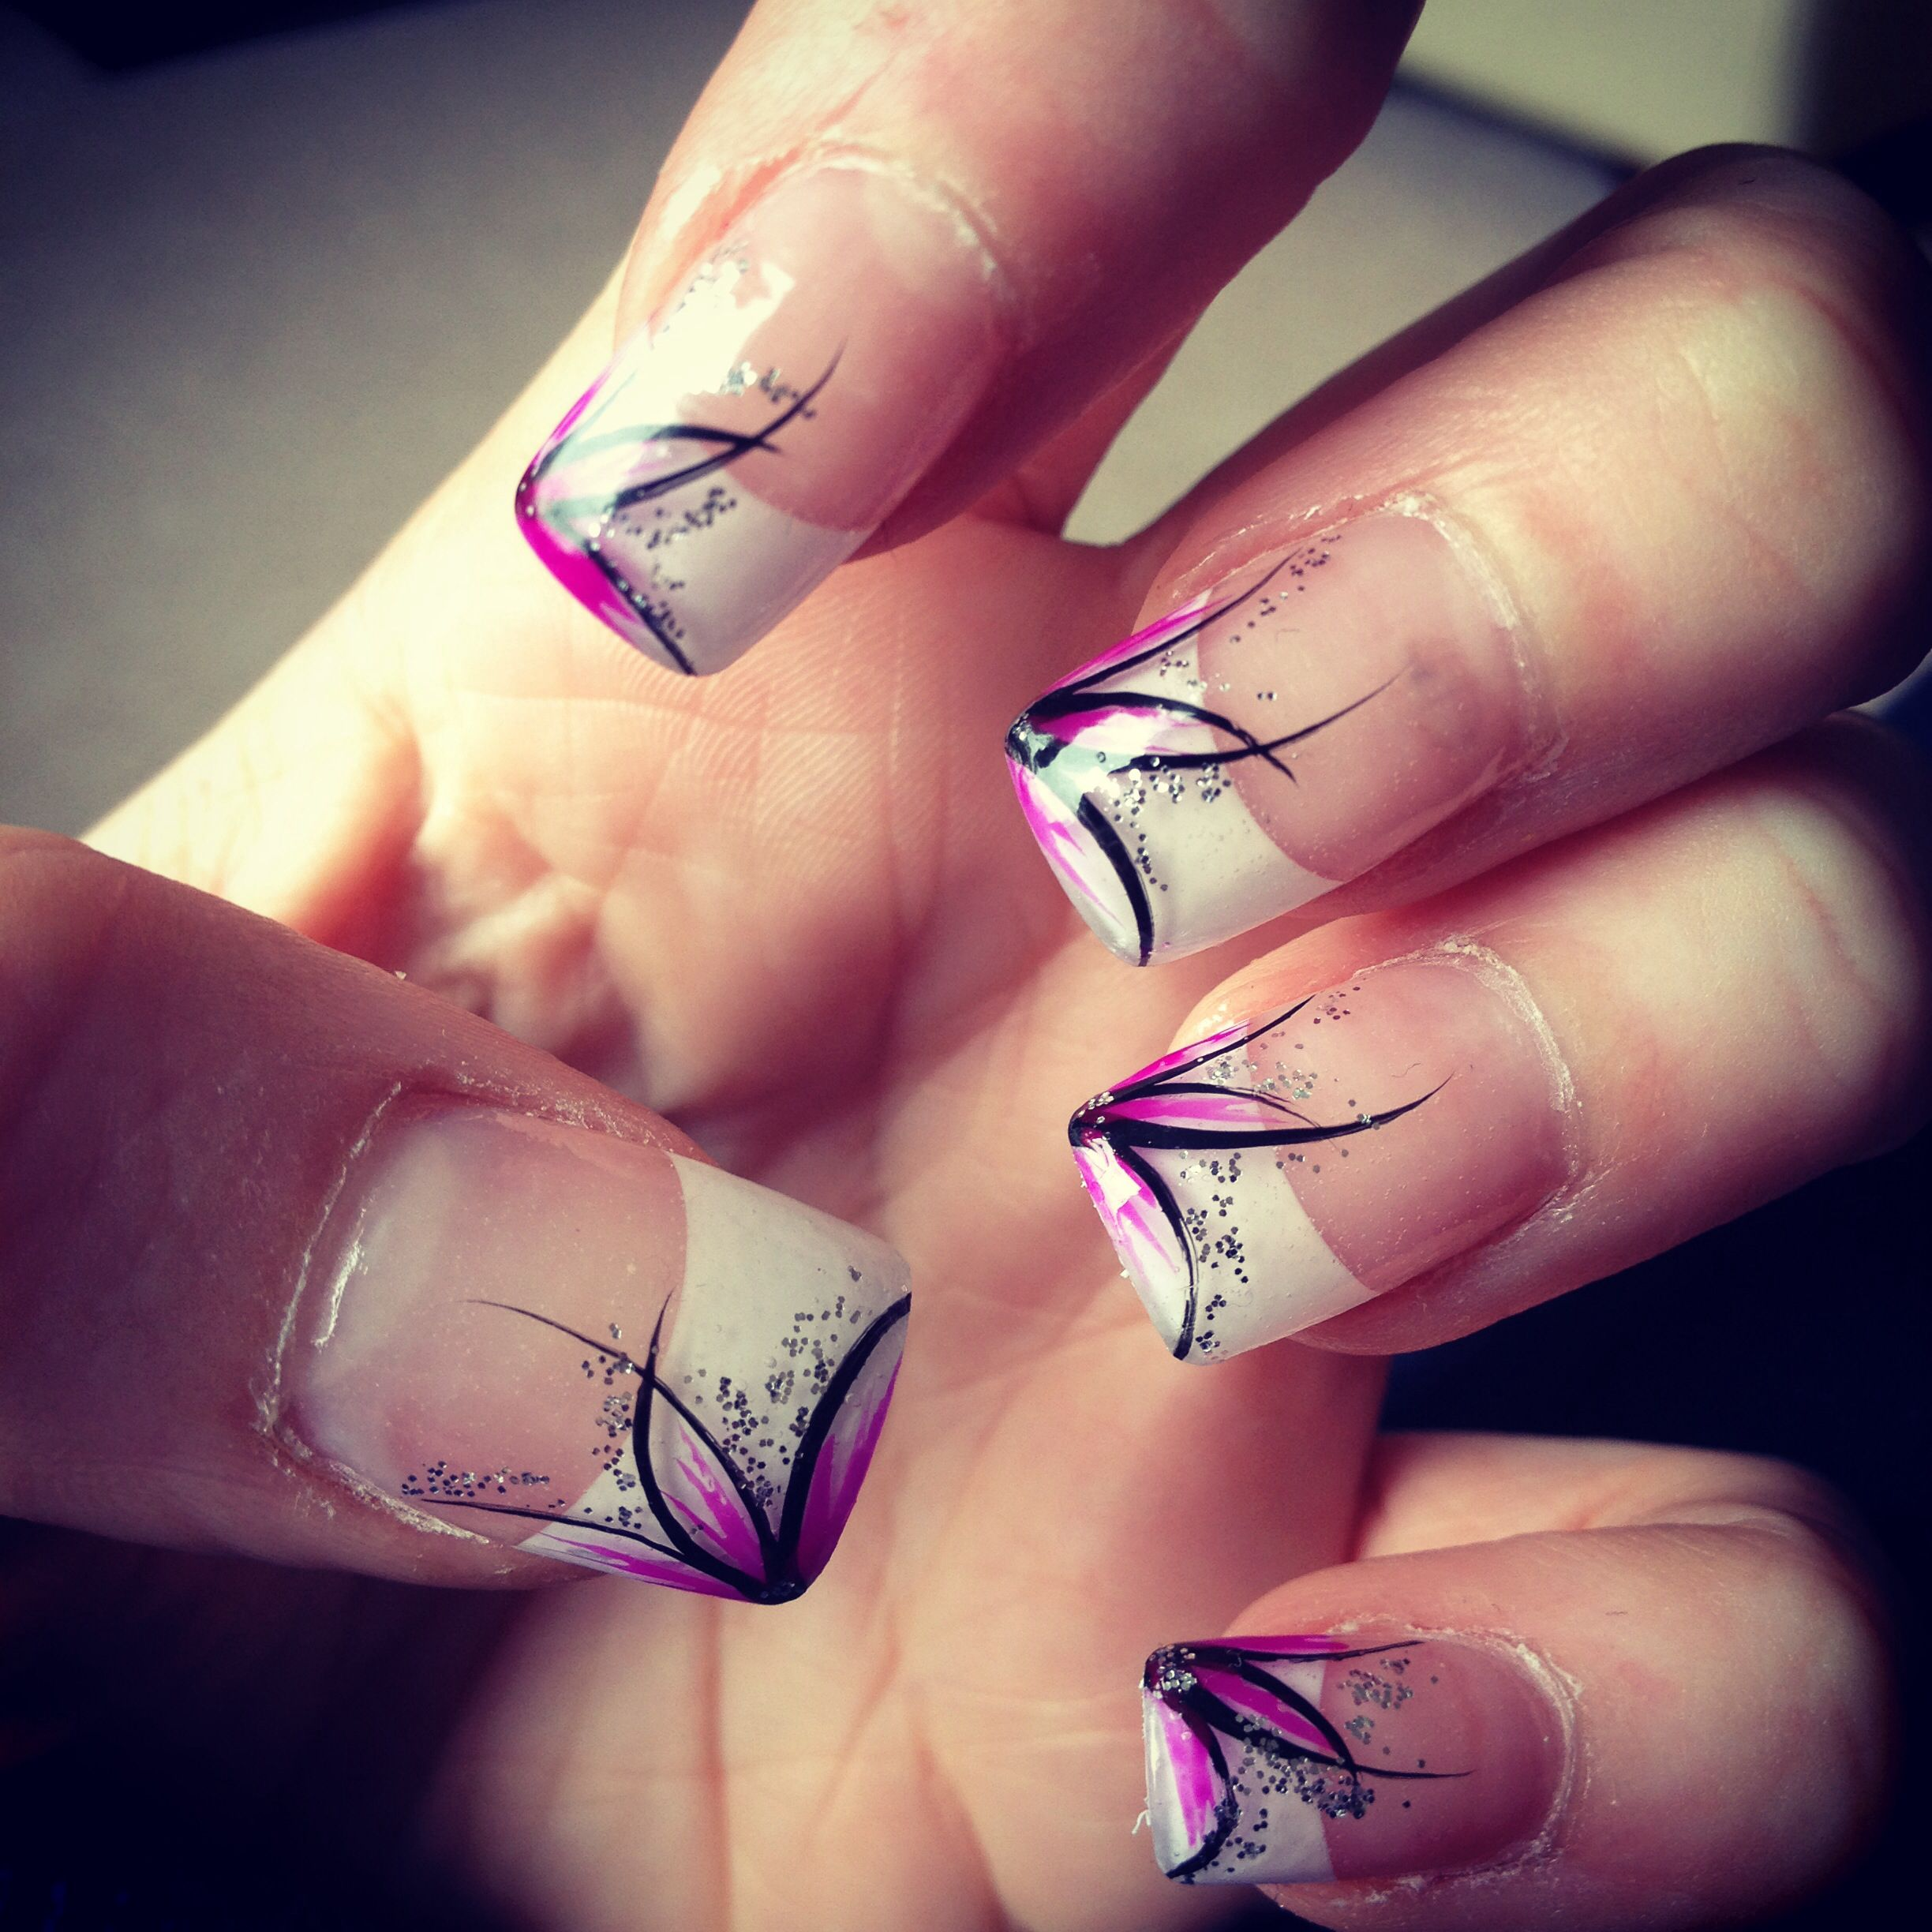 Current nail art design, with white tips | Rubis sur ongles ...